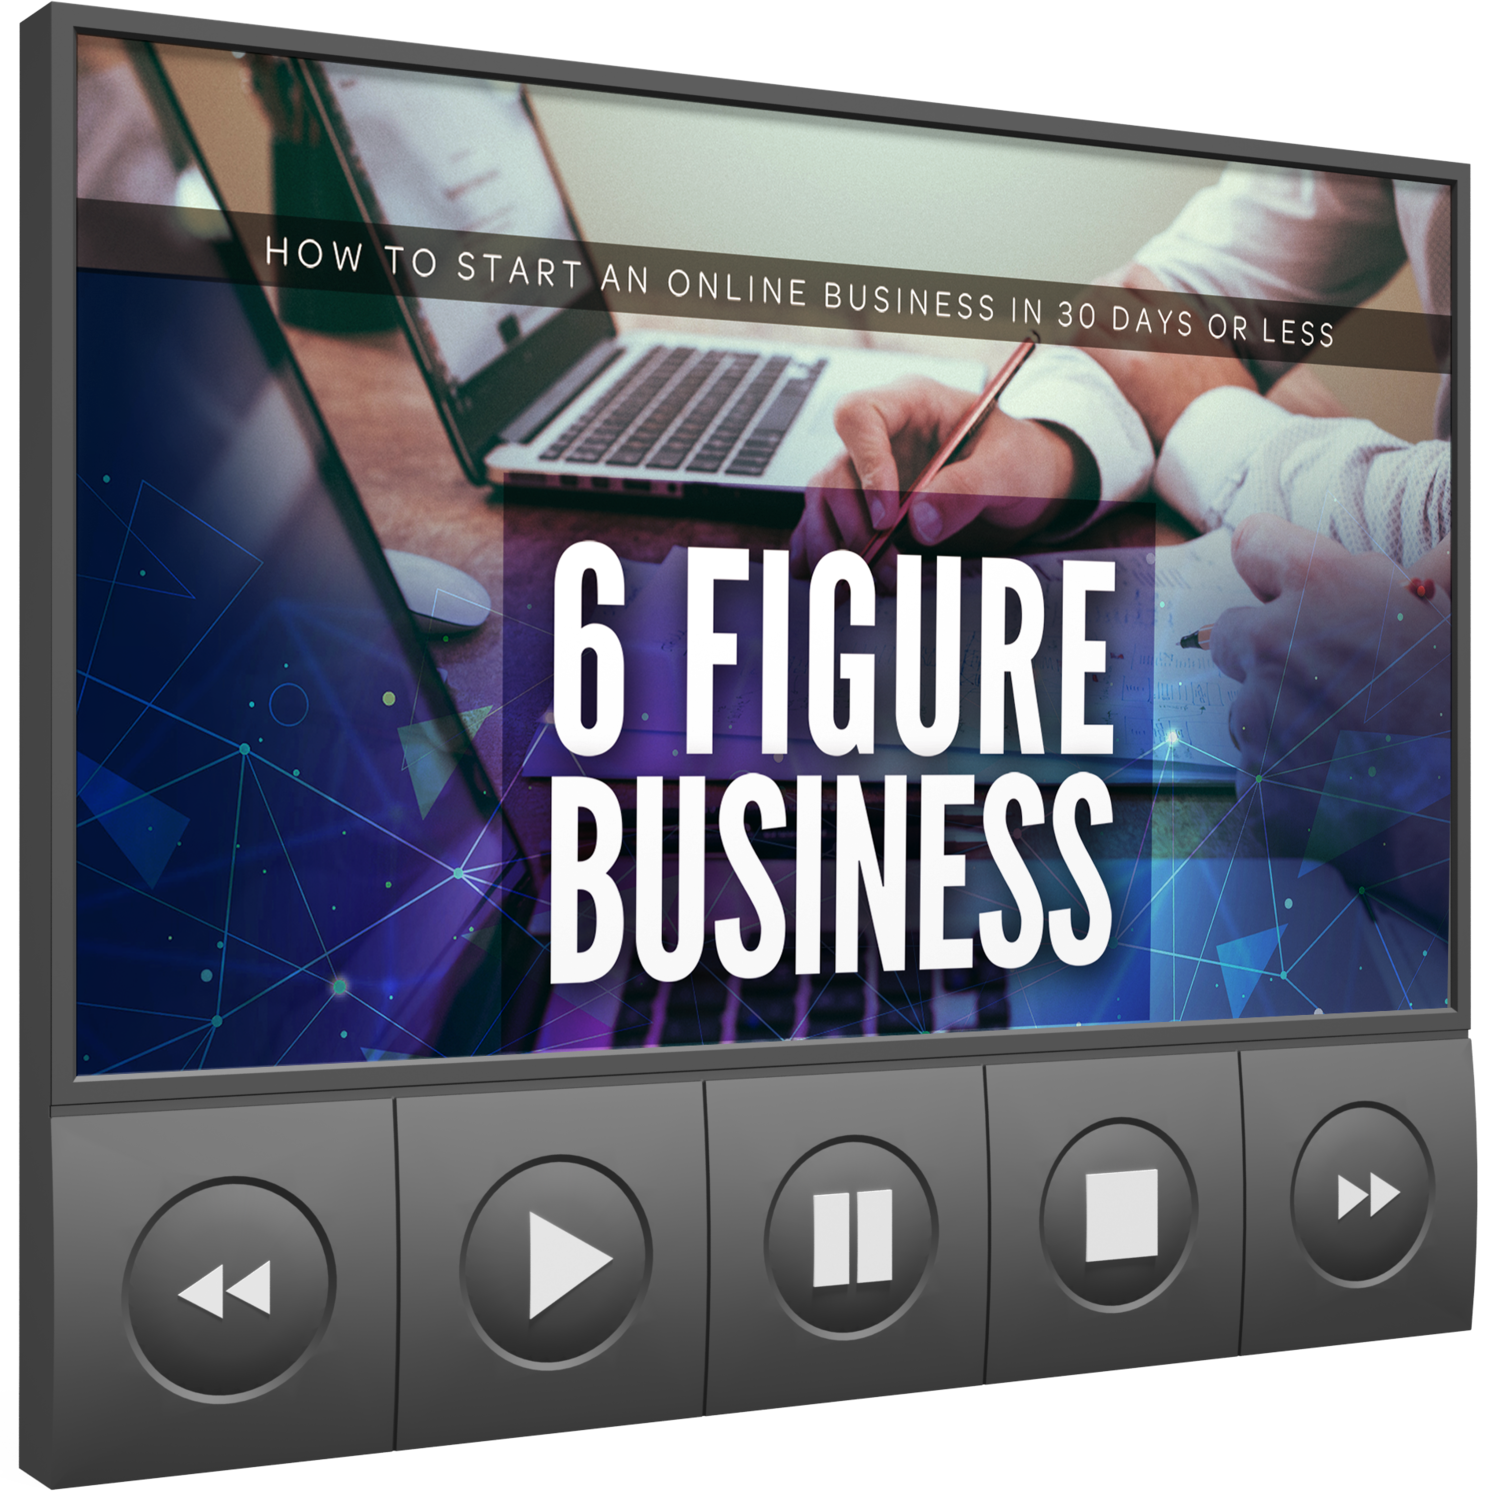 How to Build 6 Figure Online Business Video